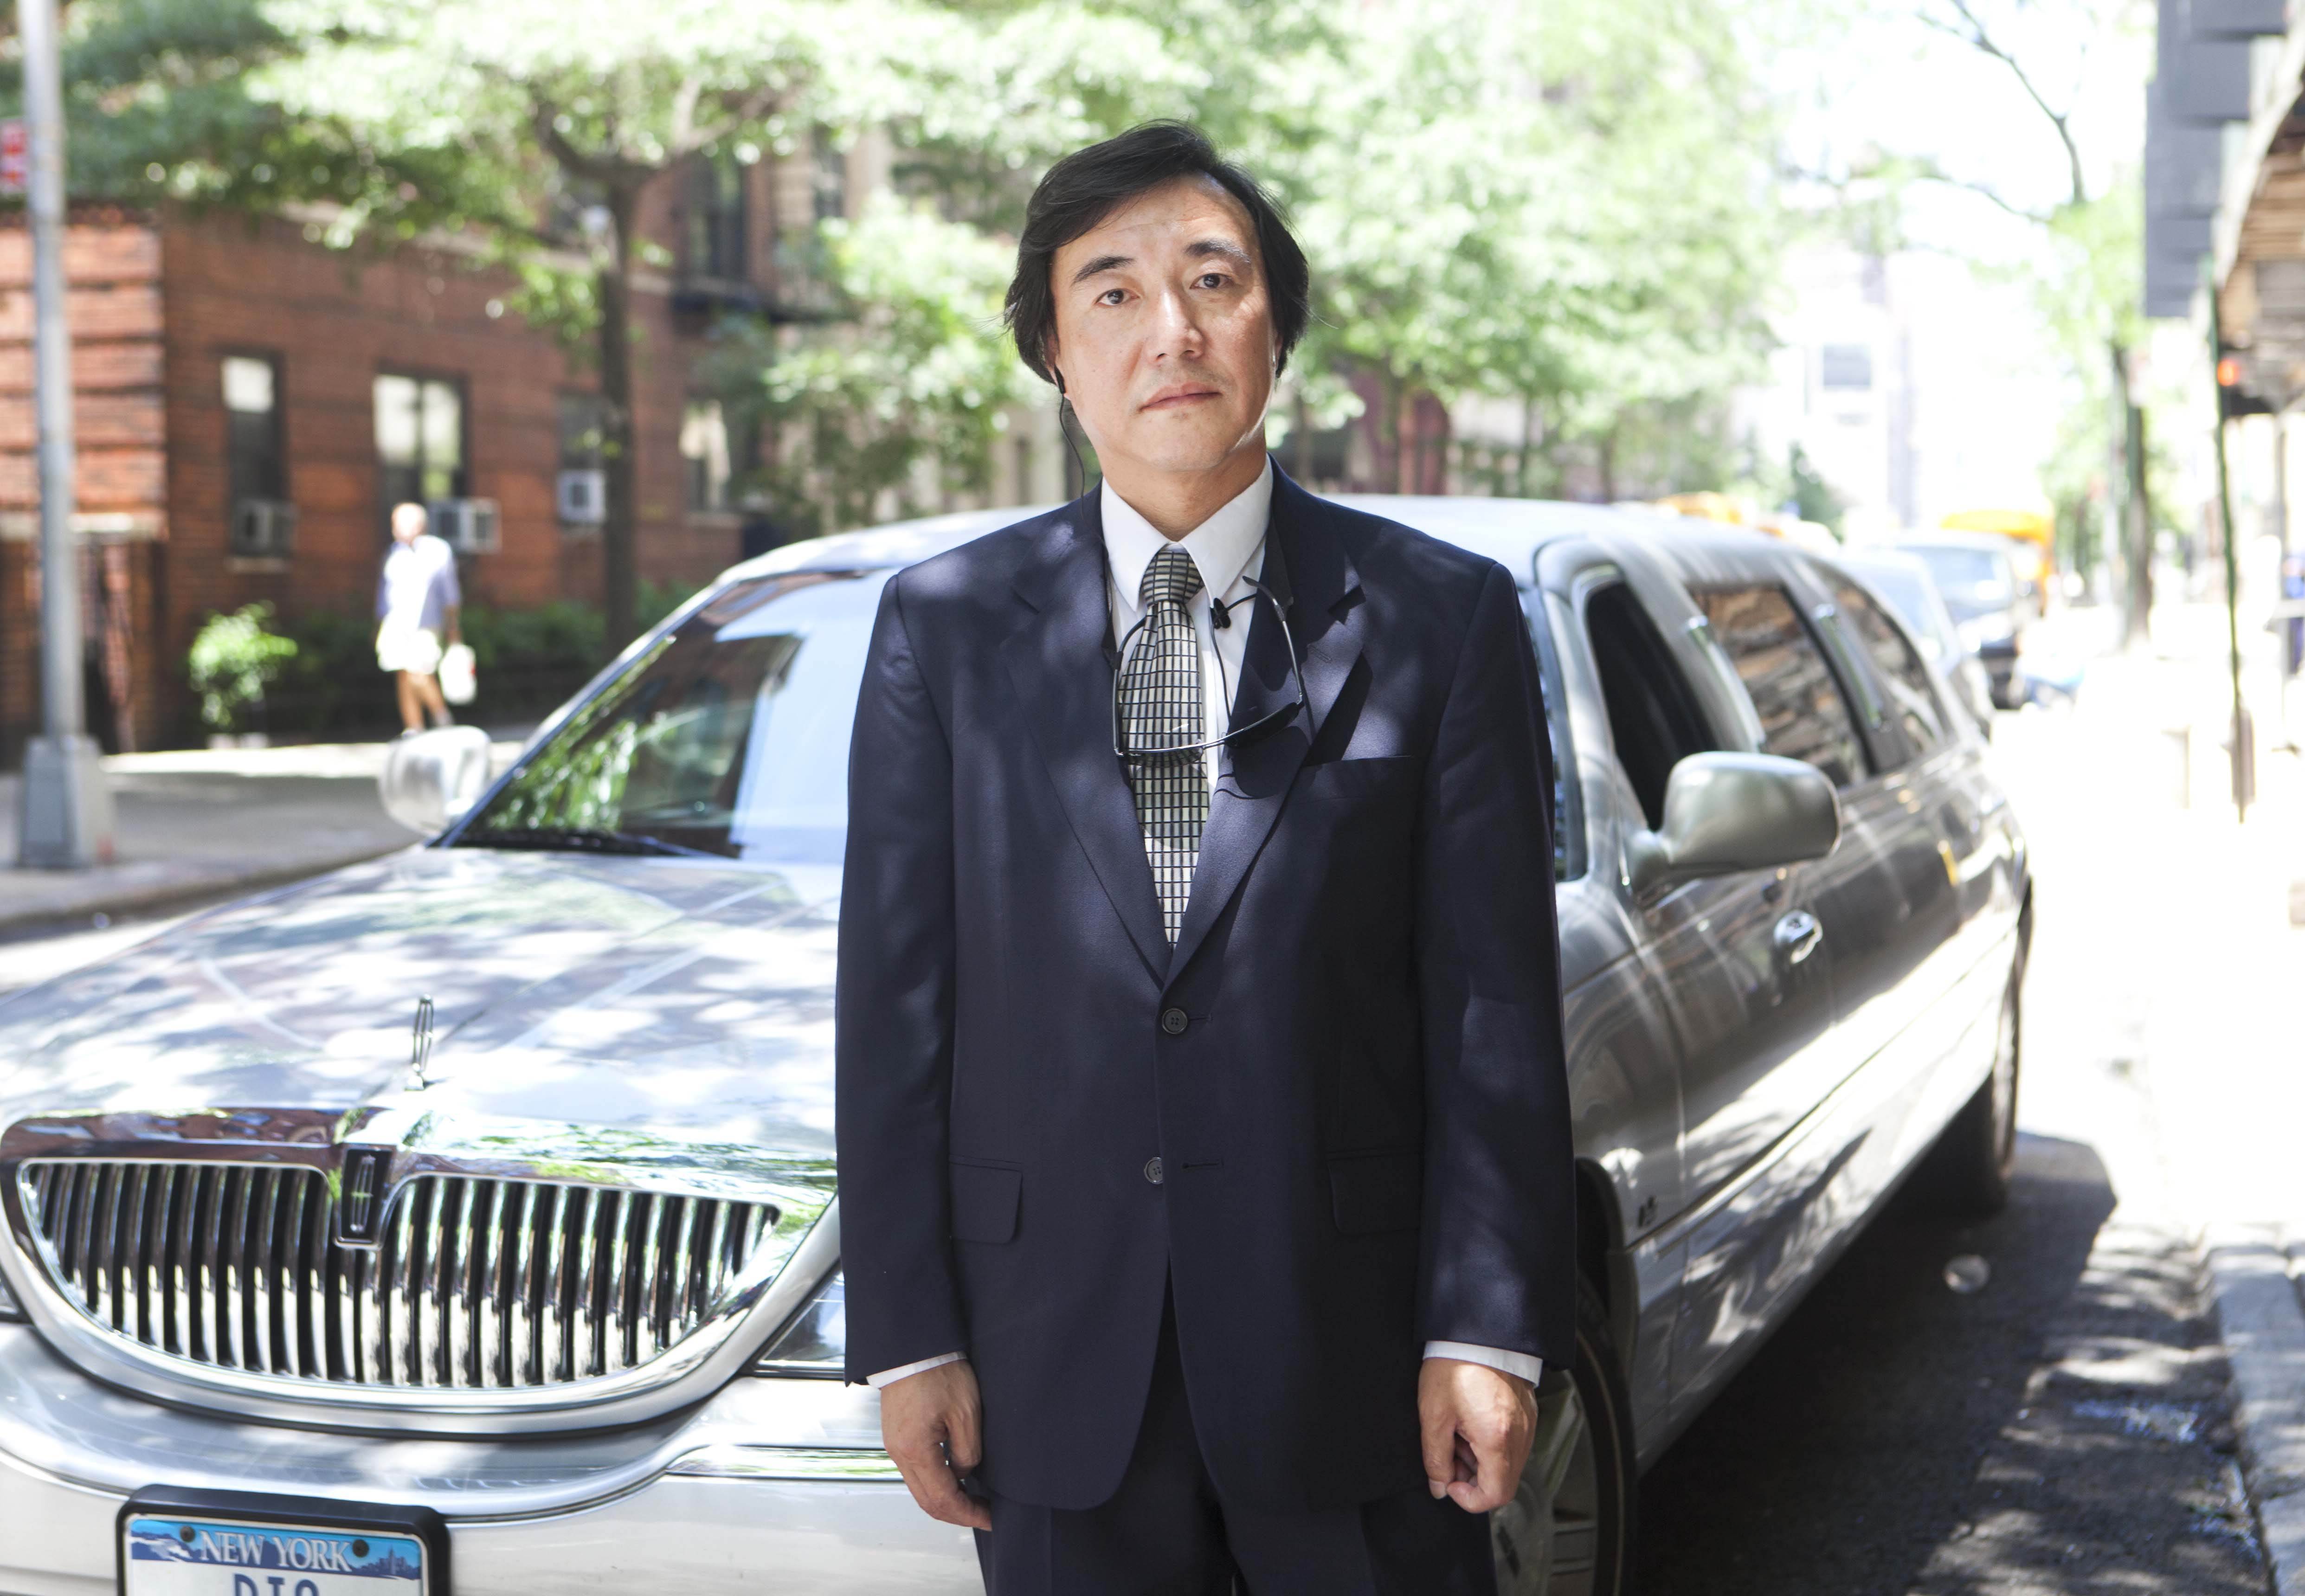 Chinese chauffeur says city racially profiled in illegal ...